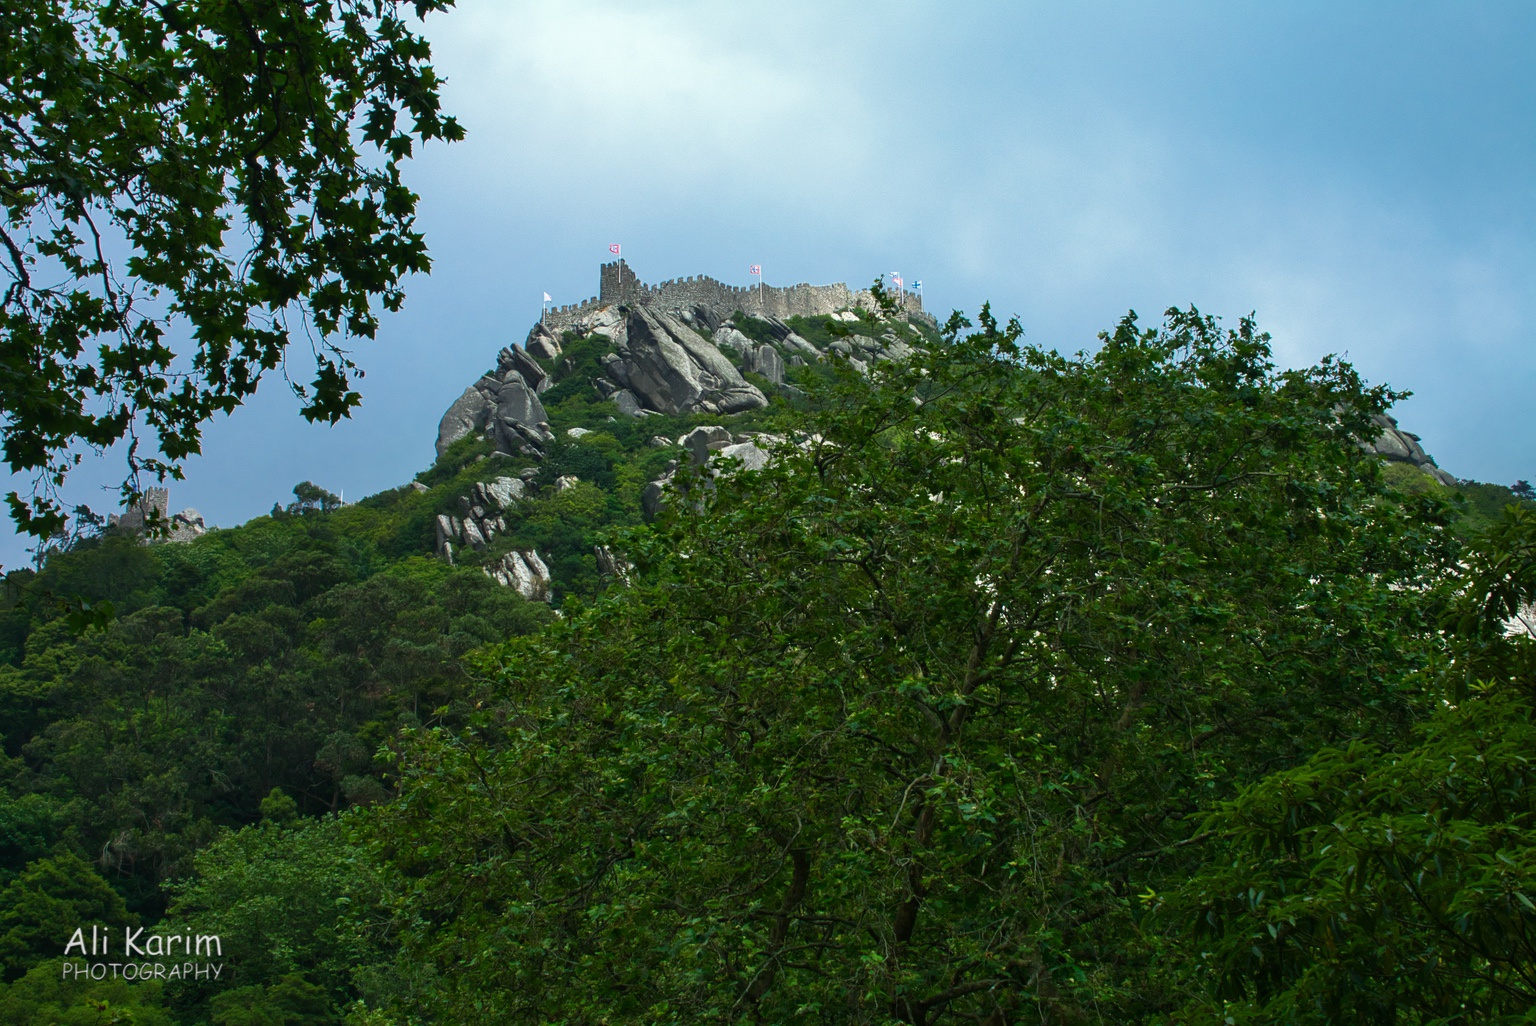 West of Lisbon Moors Castle, perched strategically on the highest hill around